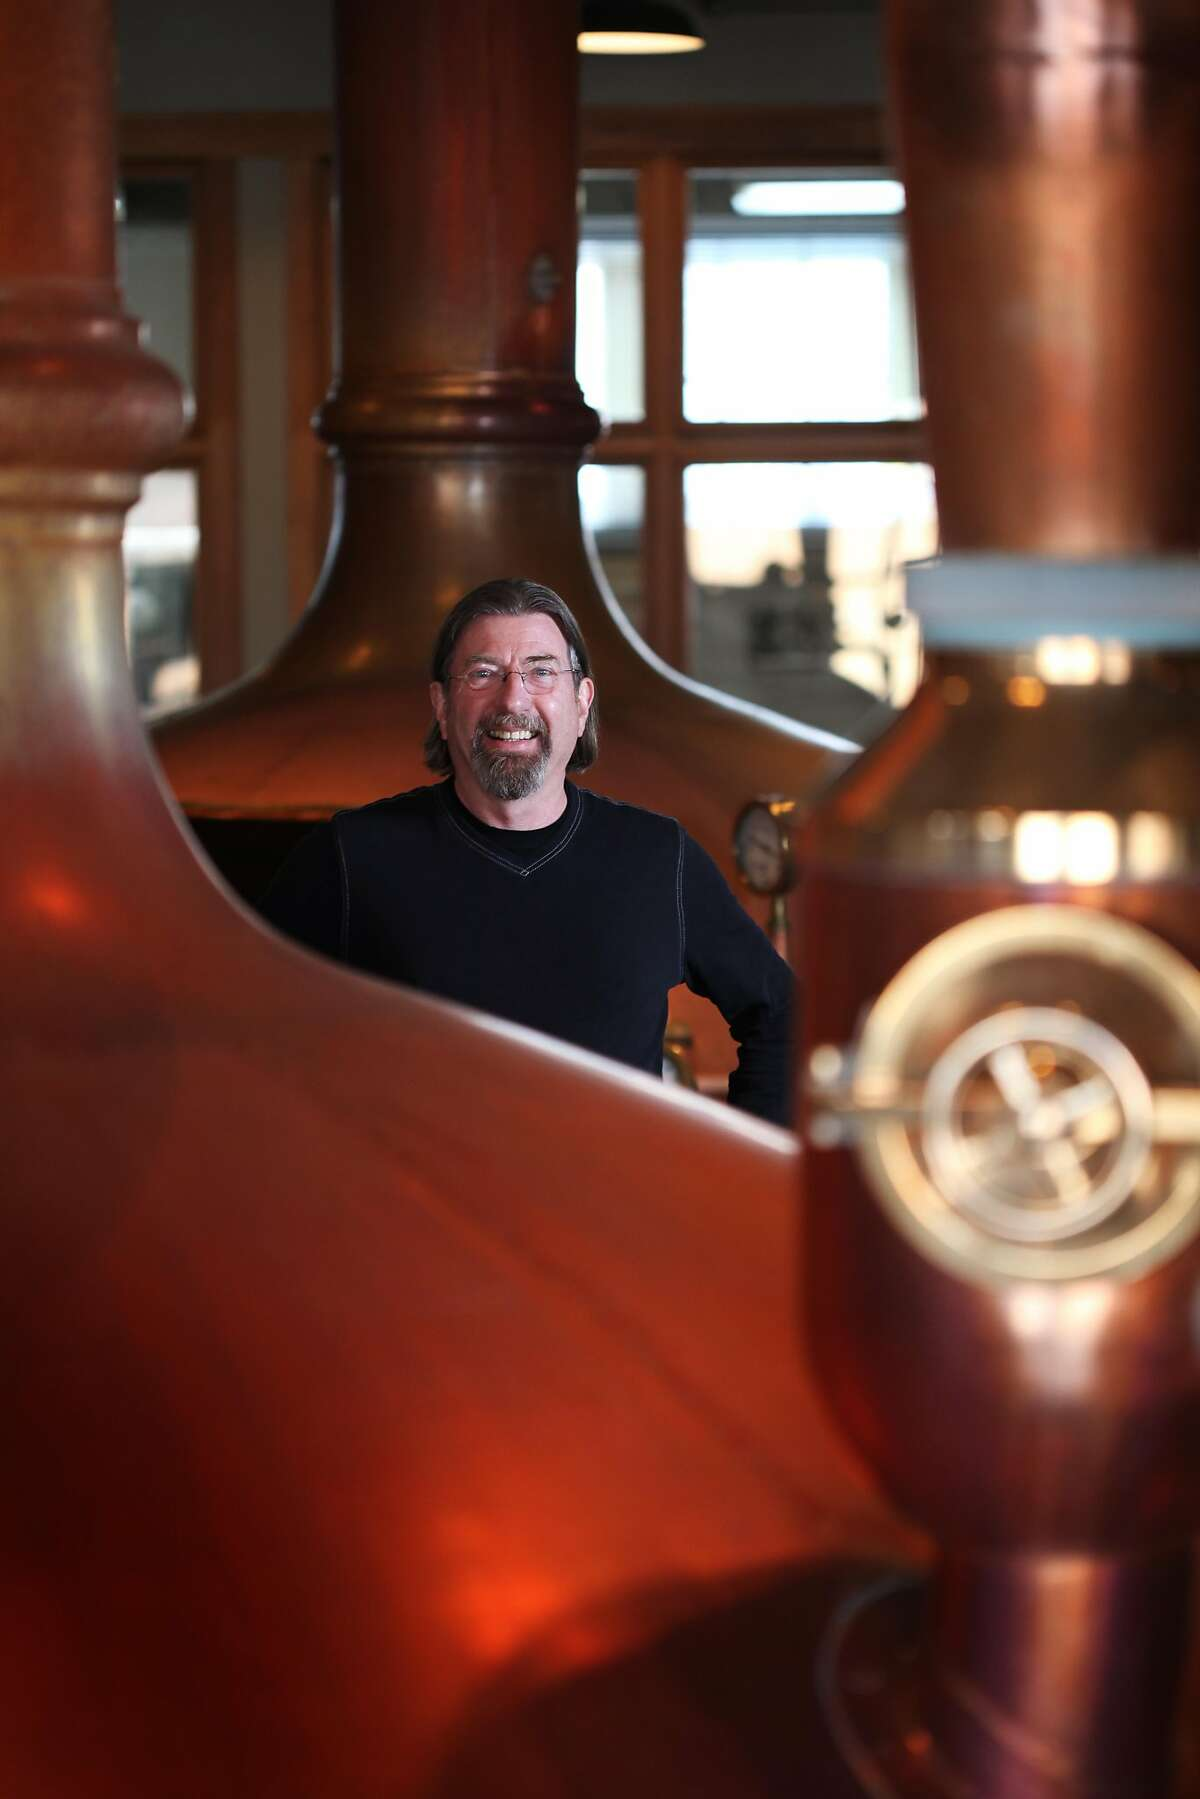 Keith Greggor, President & CEO of Anchor Brewers & Distillers, poses for portraits among brew kettles at the company's Potrero Hill headquarters on March 5, 2013 in San Francisco, Calif.